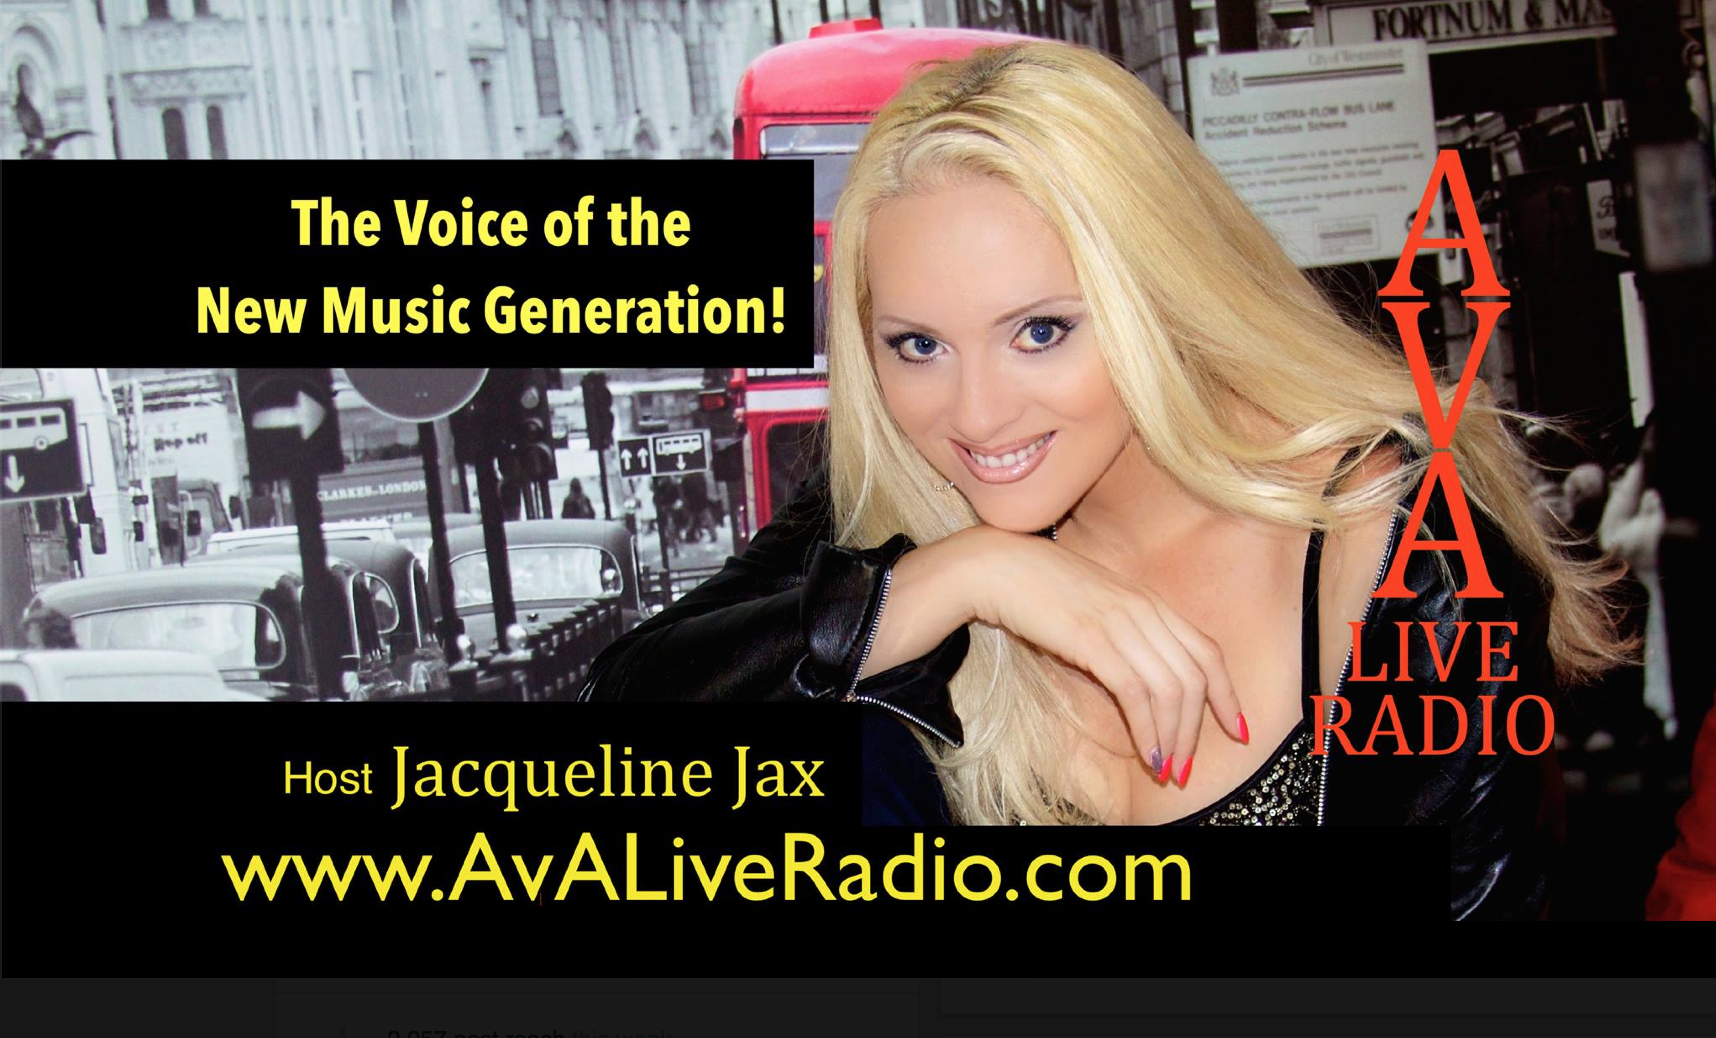 Episode #428: A.V.A Live Radio Behind The Music with Jacqueline Jax